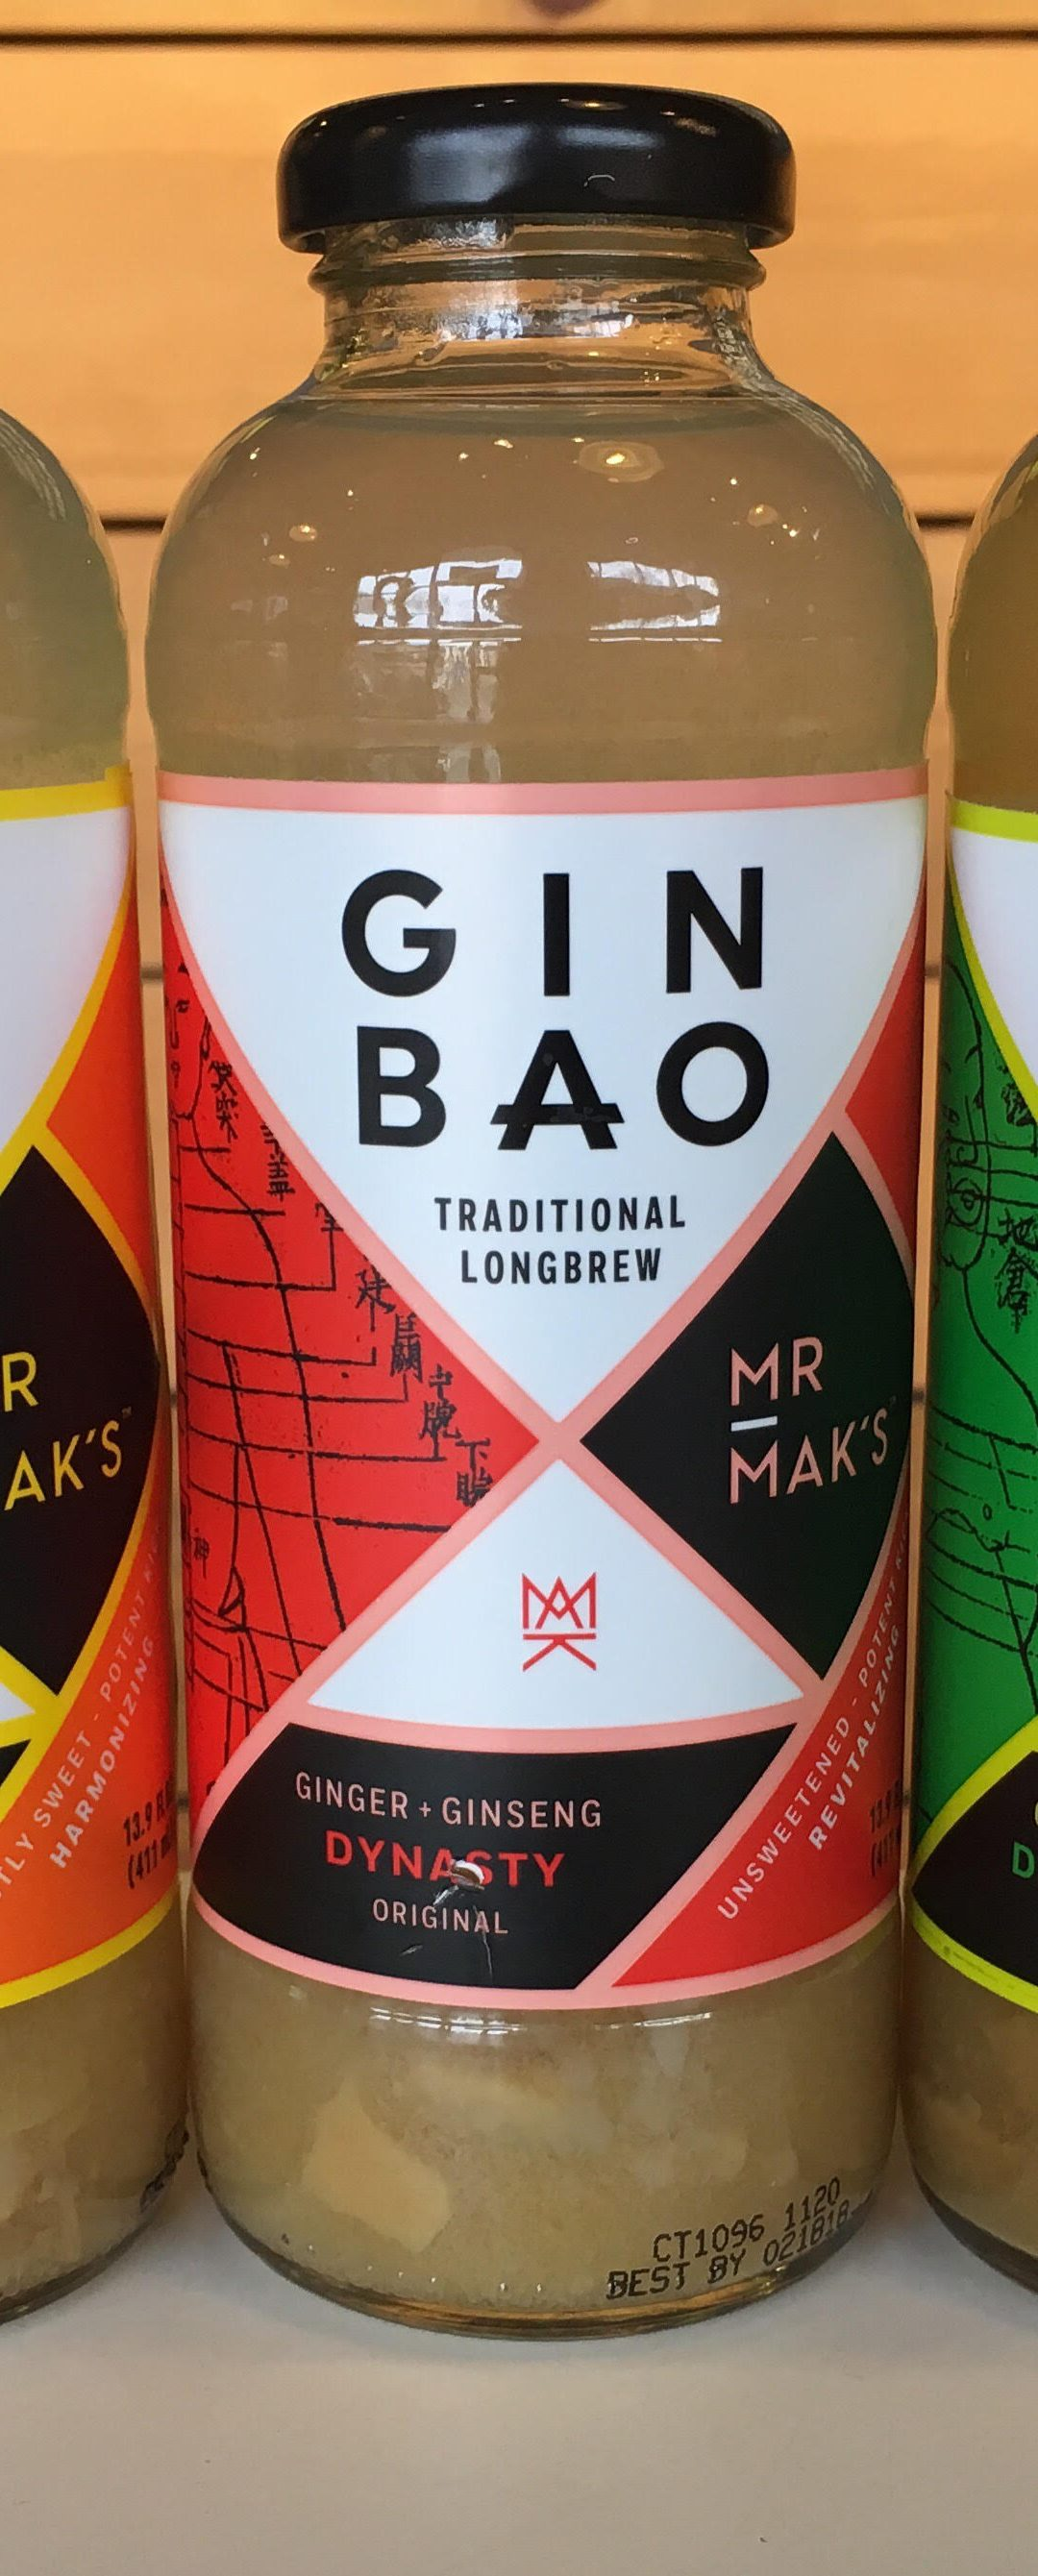 Gin Bao: Long Brewed Tea Steeped in Tradition